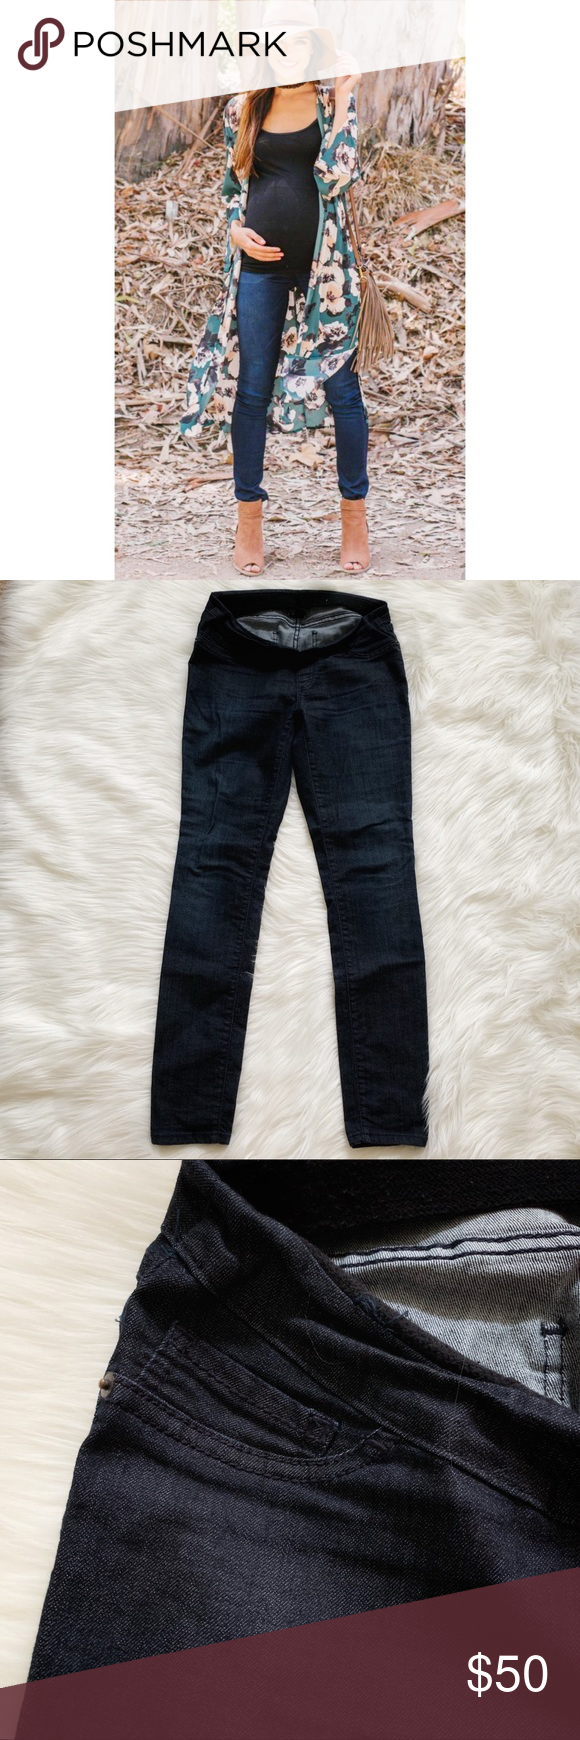 07c91b5428f4e Maternity jeans Heidi Klum Lavish maternity jeans, this is the nicer line  sold at Pea